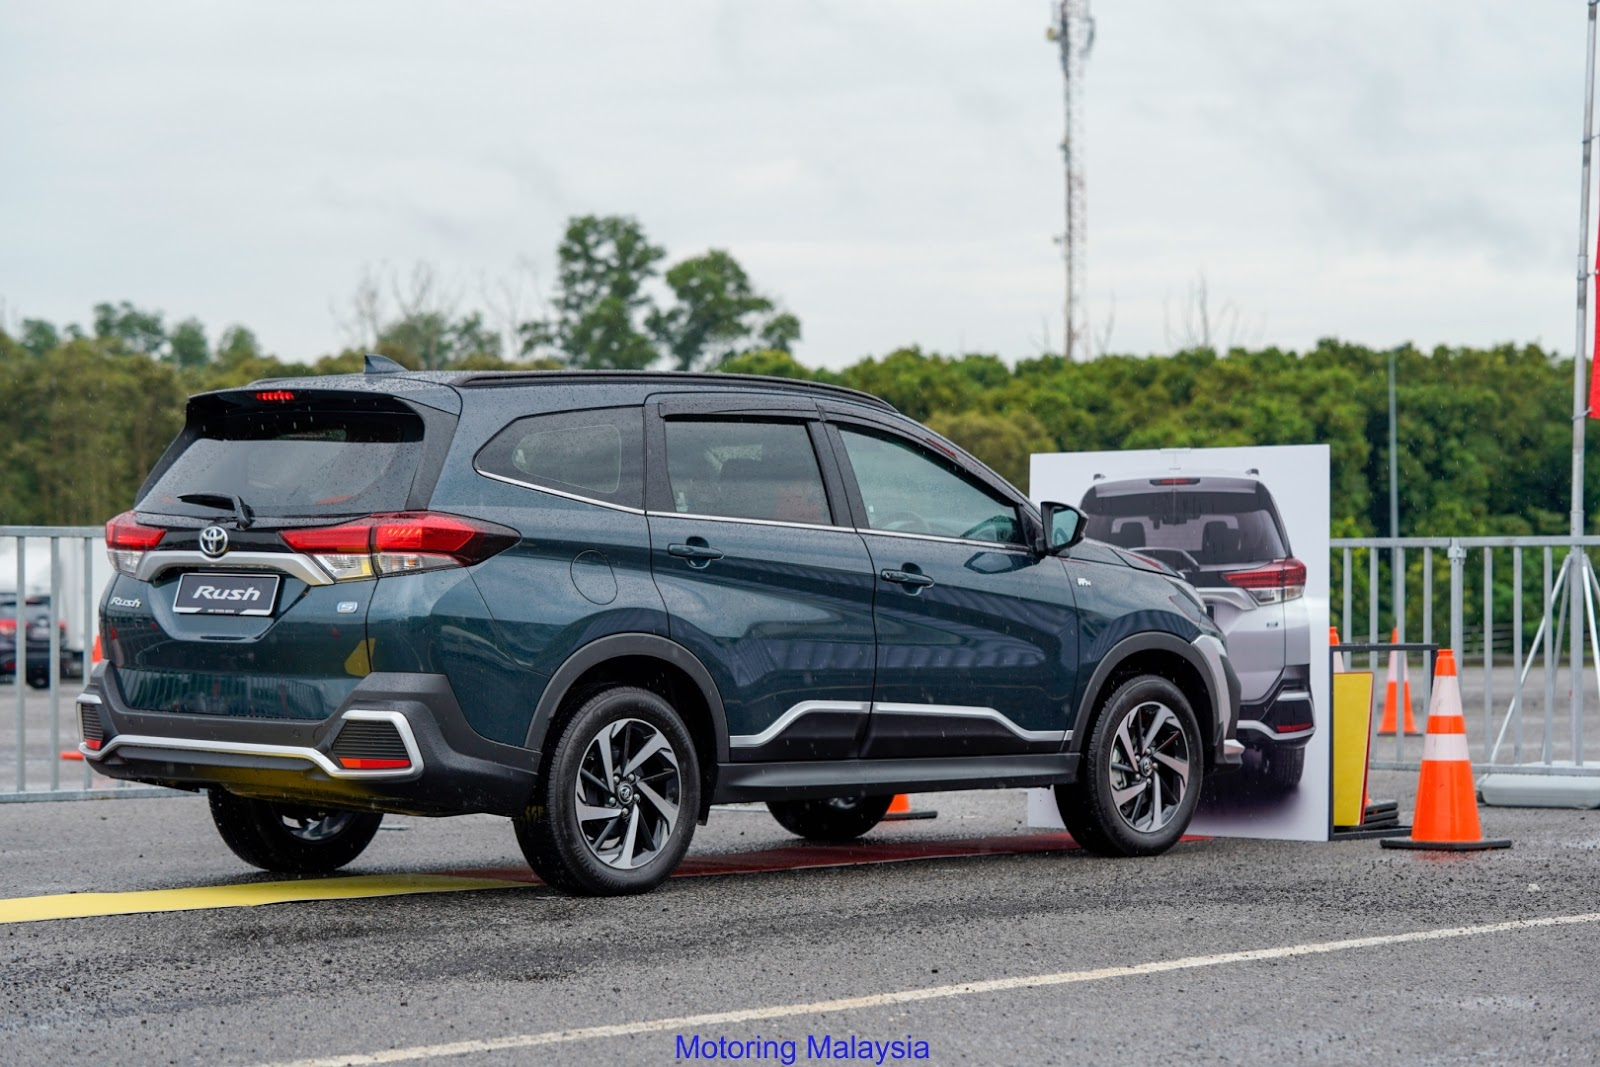 Motoring Malaysia The All New Second Generation Toyota Rush Has